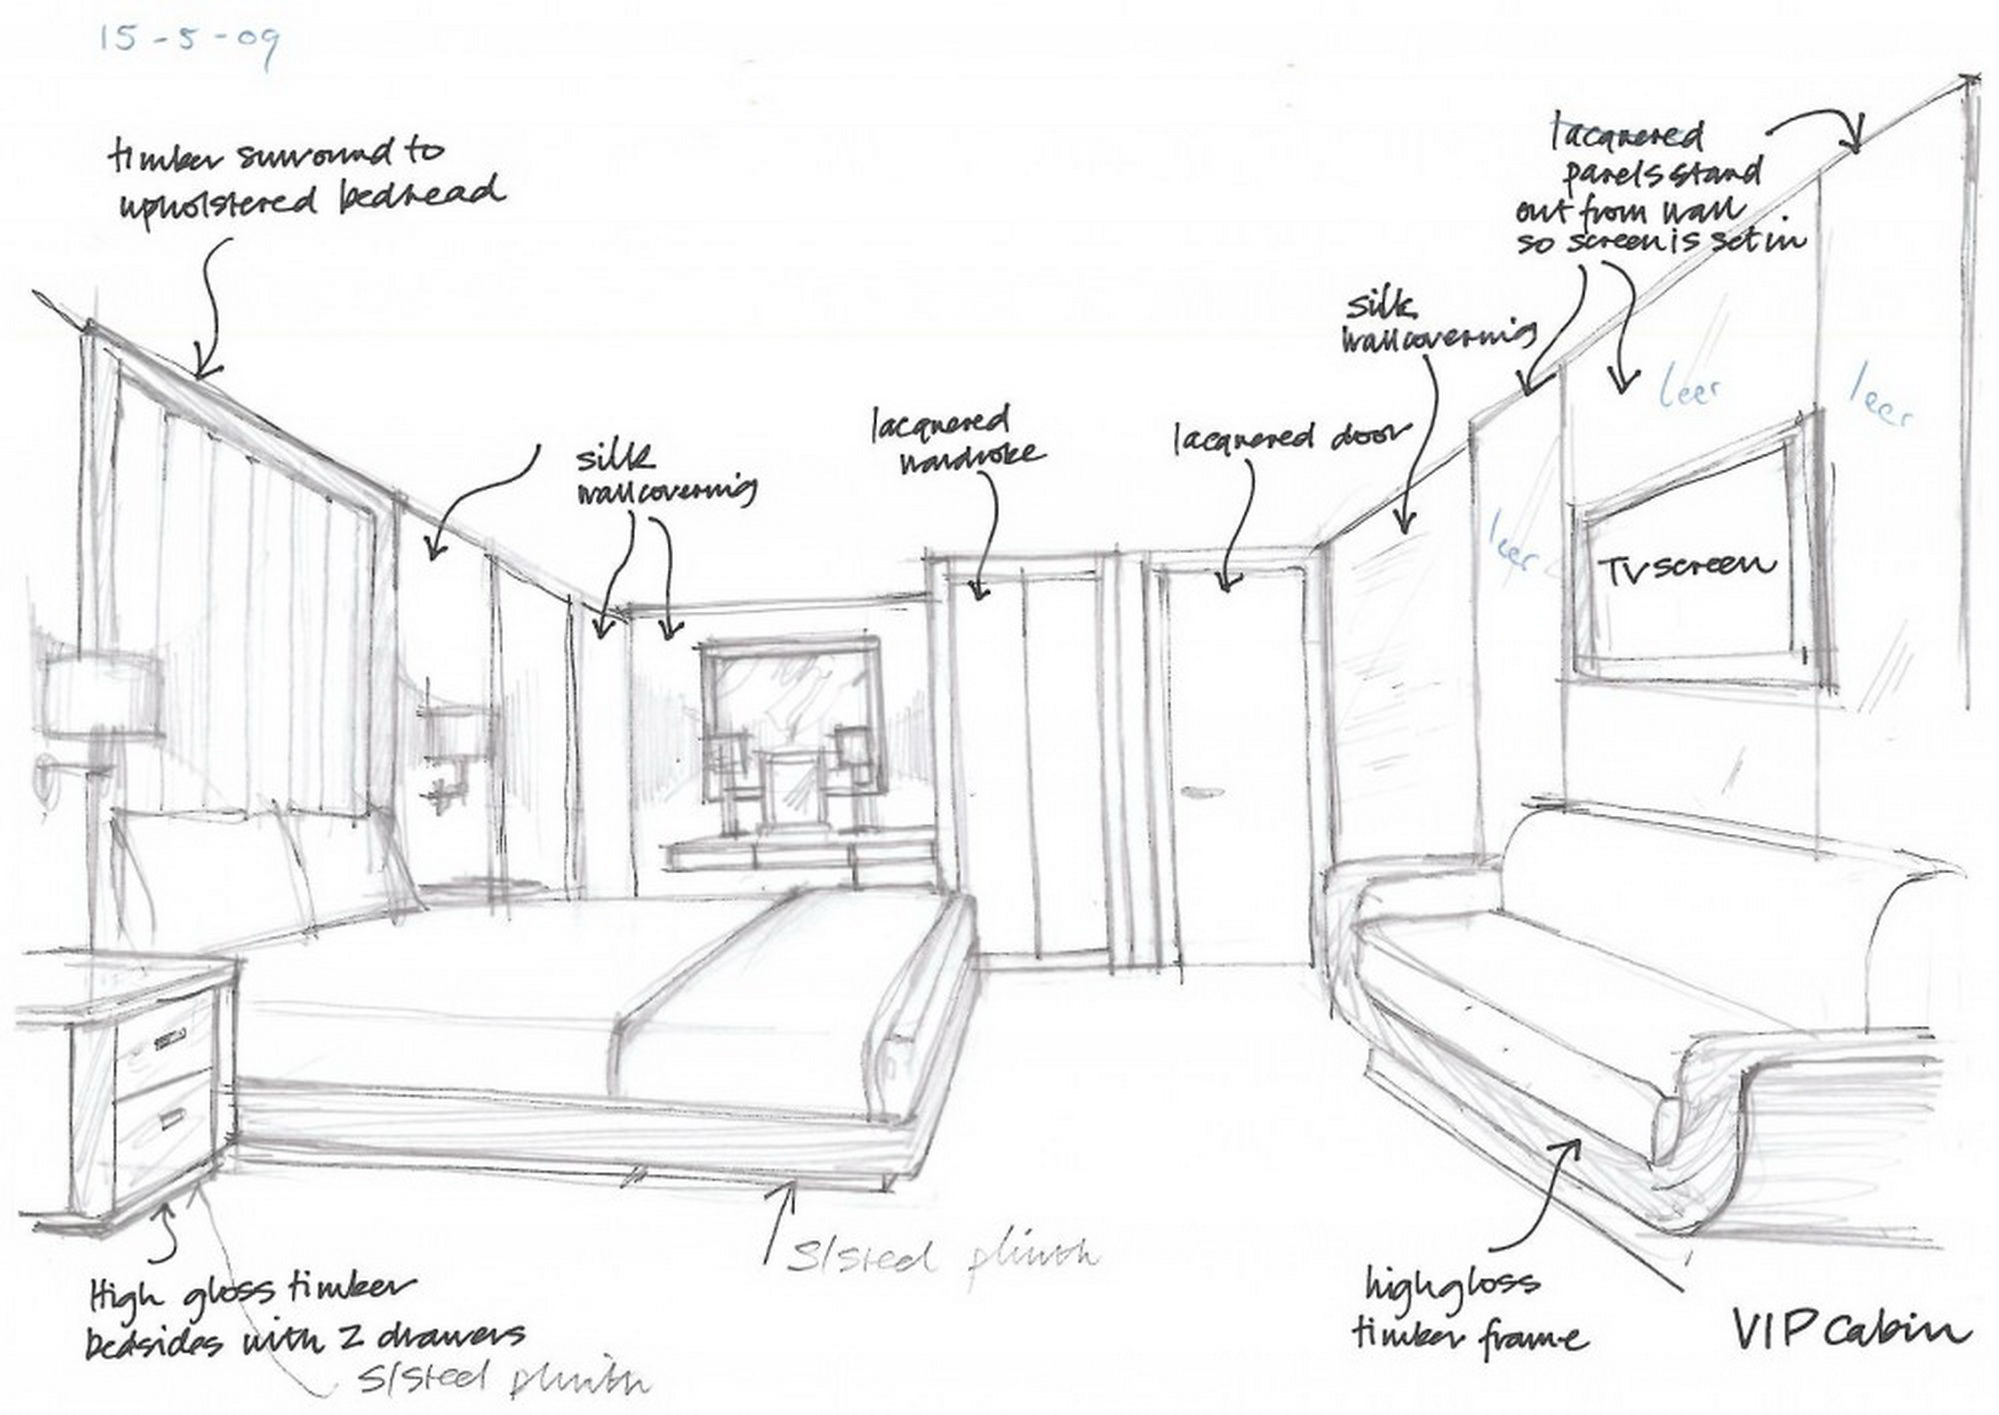 Interior design olivier van meer design naval architect for Interior designs drawings